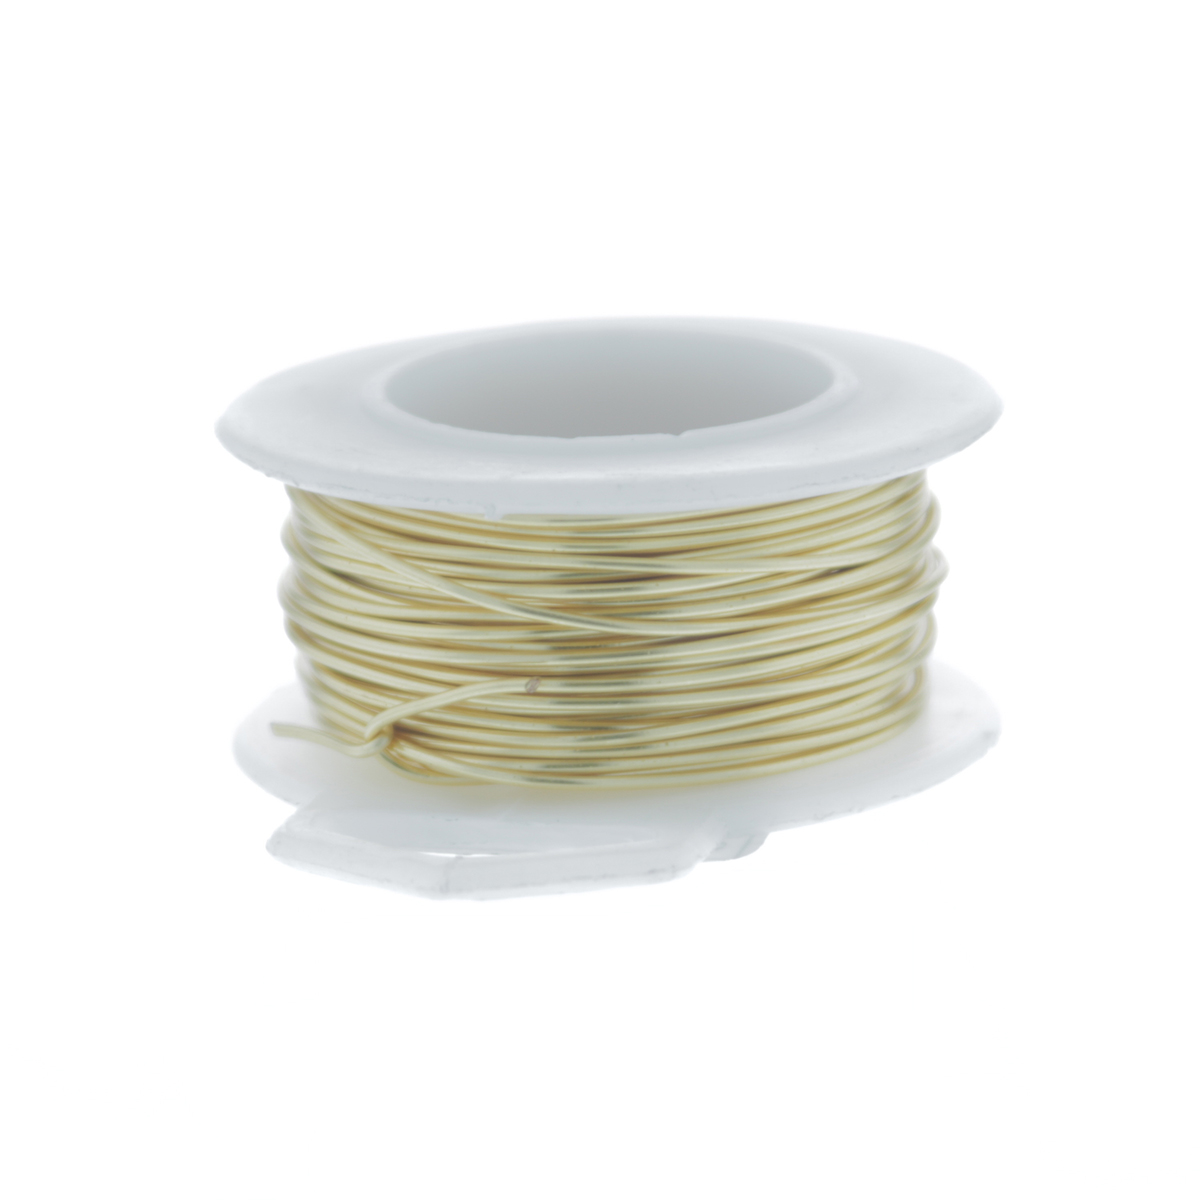 22 Gauge Round Silver Plated Gold Copper Craft Wire - 30 ft